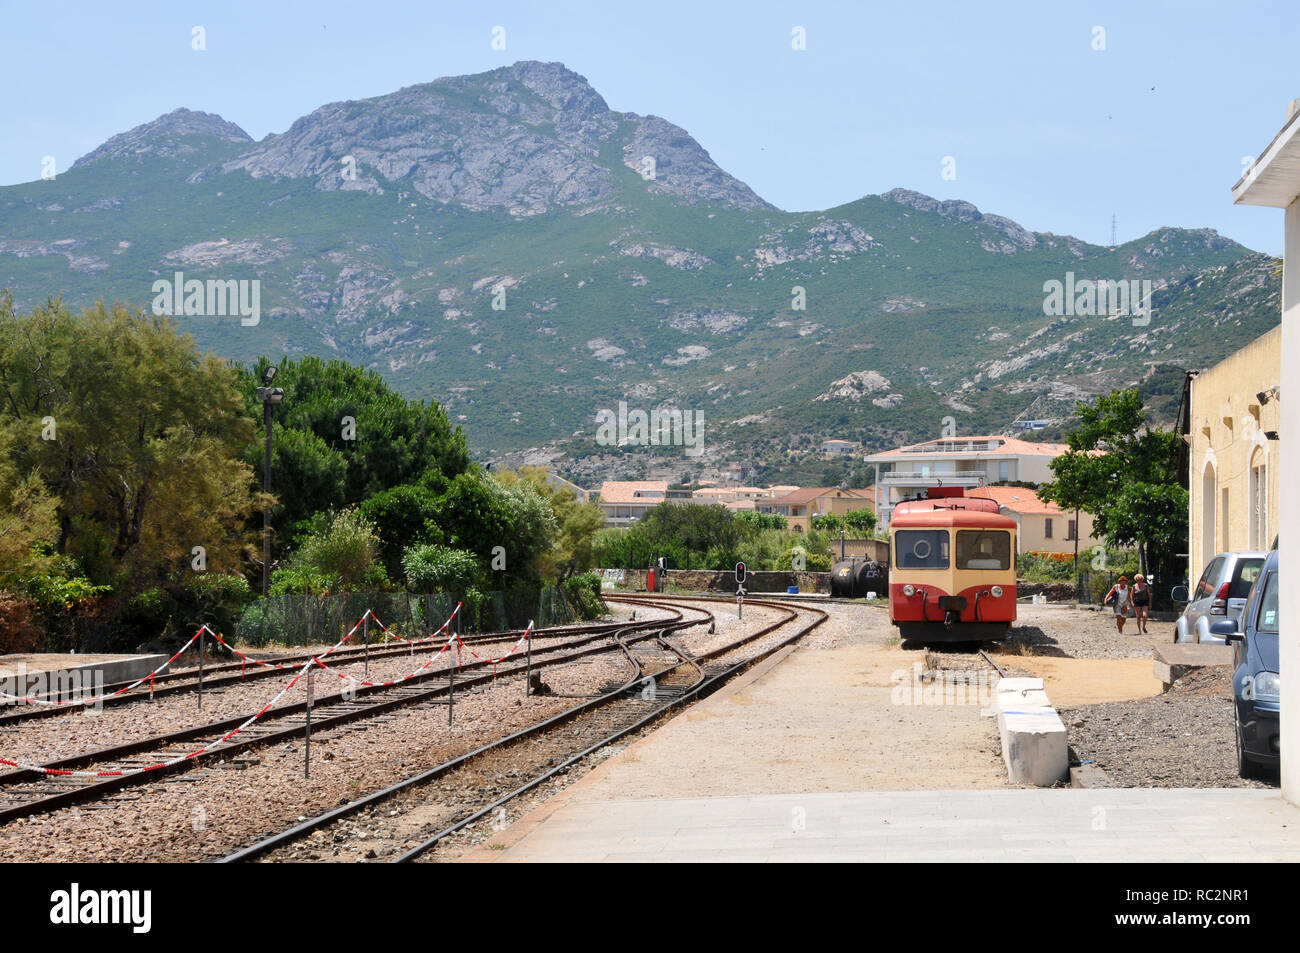 A couple of passengers making their way to the train Station in Calvi - Stock Image